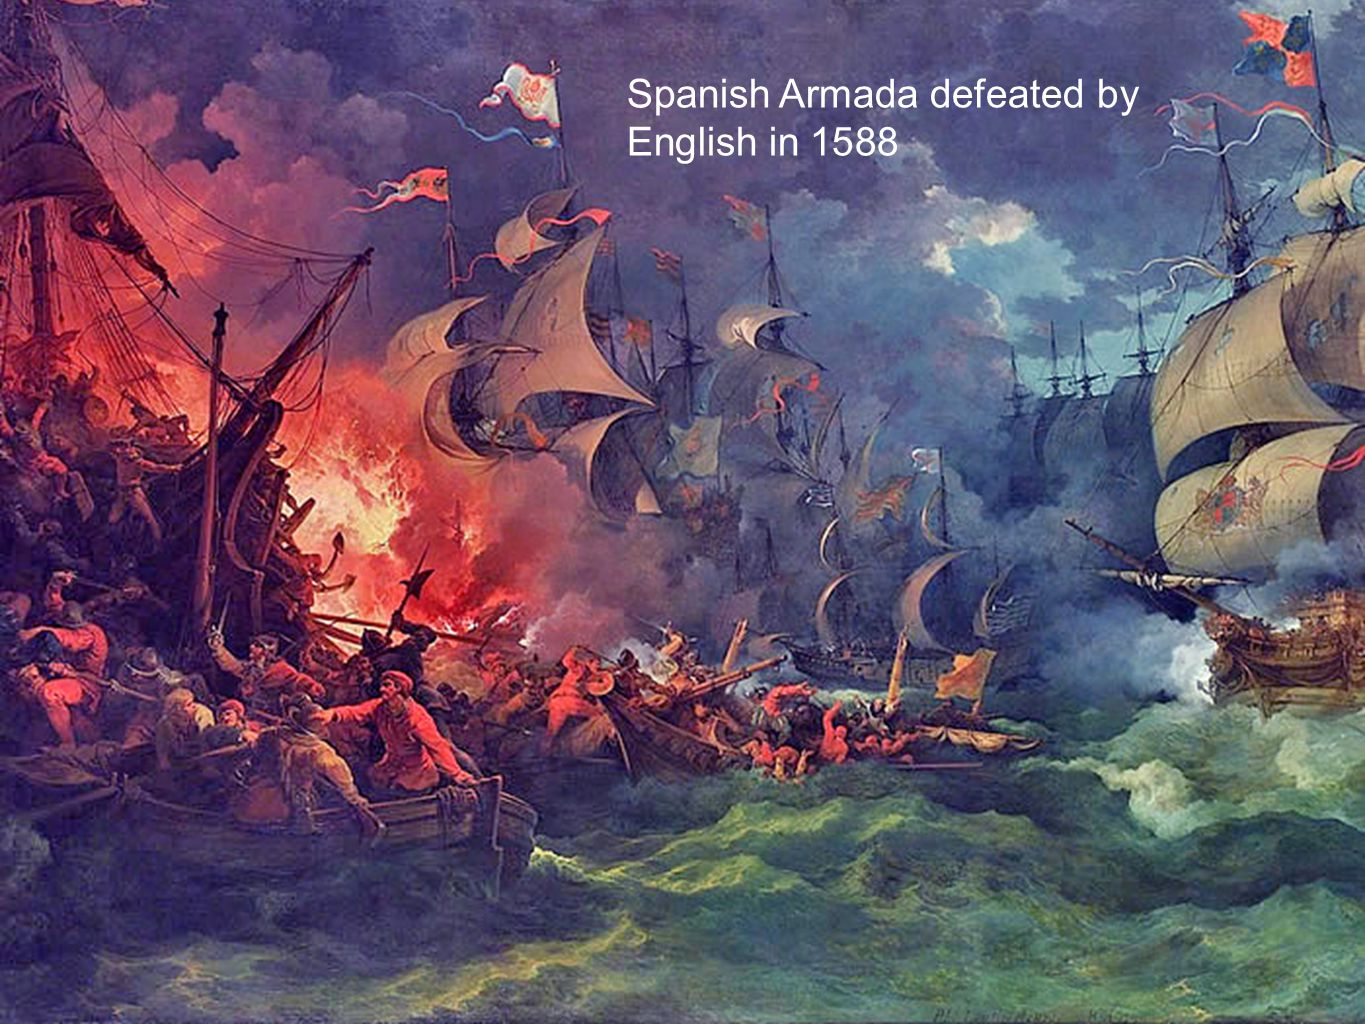 Spanish Armada defeated by English in 1588